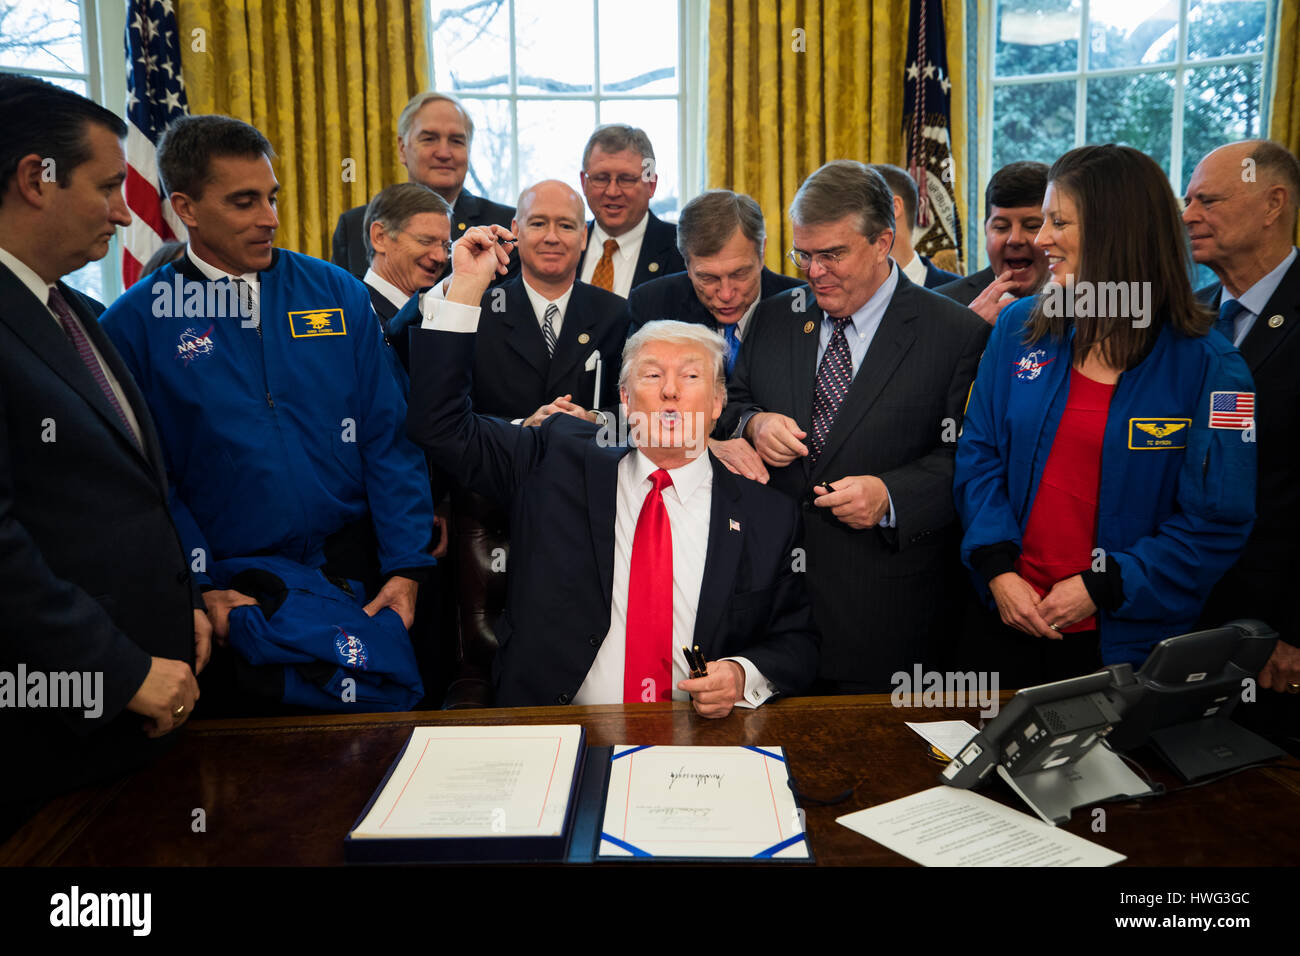 Washington DC, USA. 21st March 2017. U.S. President Donald J. Trump hands out pens after signing the NASA transition Stock Photo